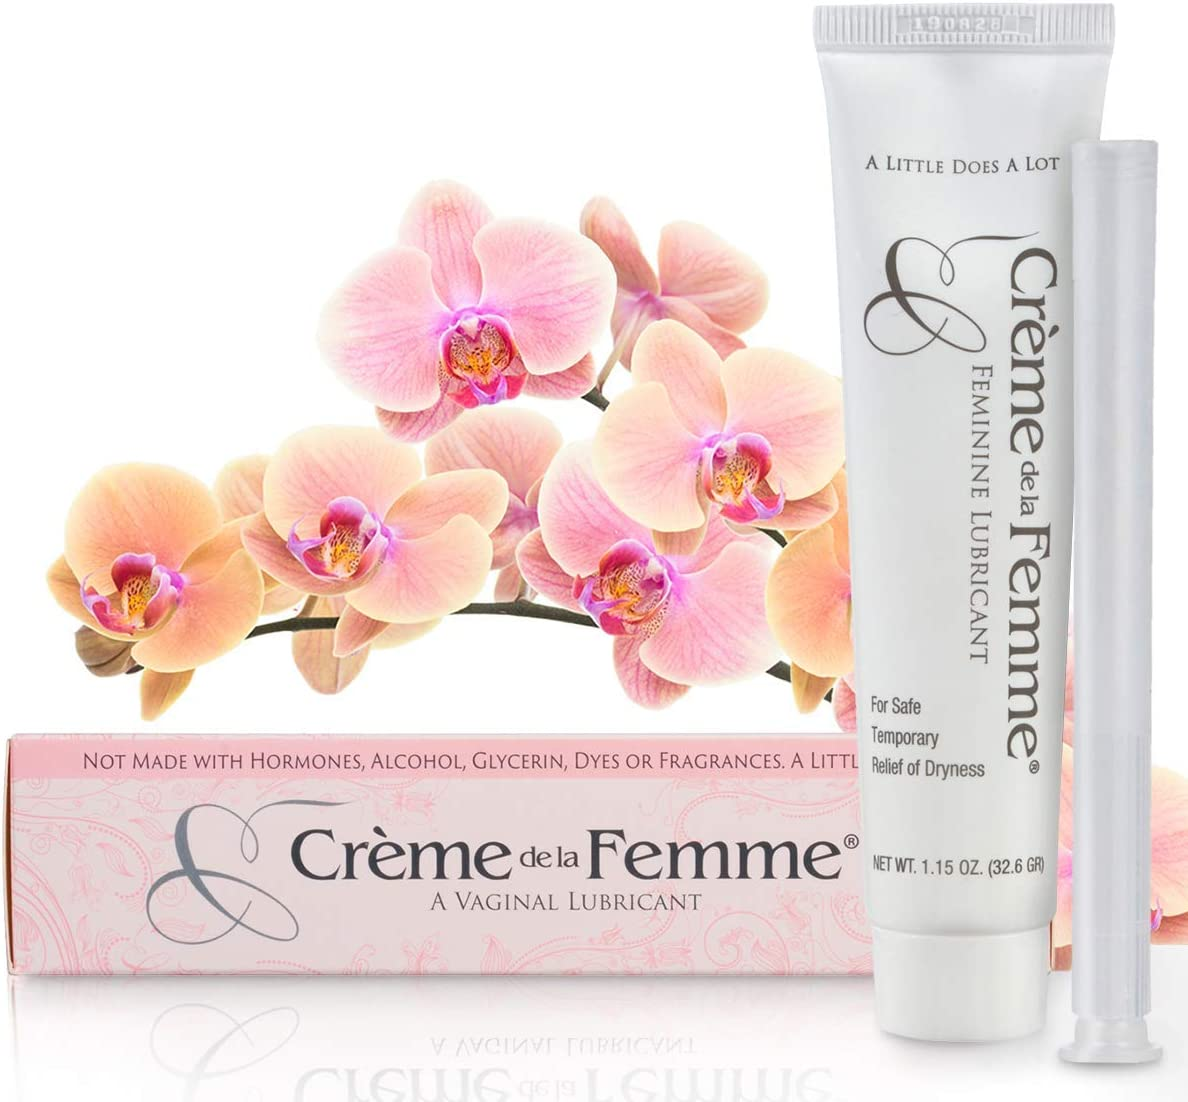 Crème De La Femme 1-Pack, Vaginal Dryness Cream Created by a Woman Doctor, Natural Menopause Dryness Remedy, Feminine Moisturizer and Lubricant, Free Applicator Included: Health & Personal Care